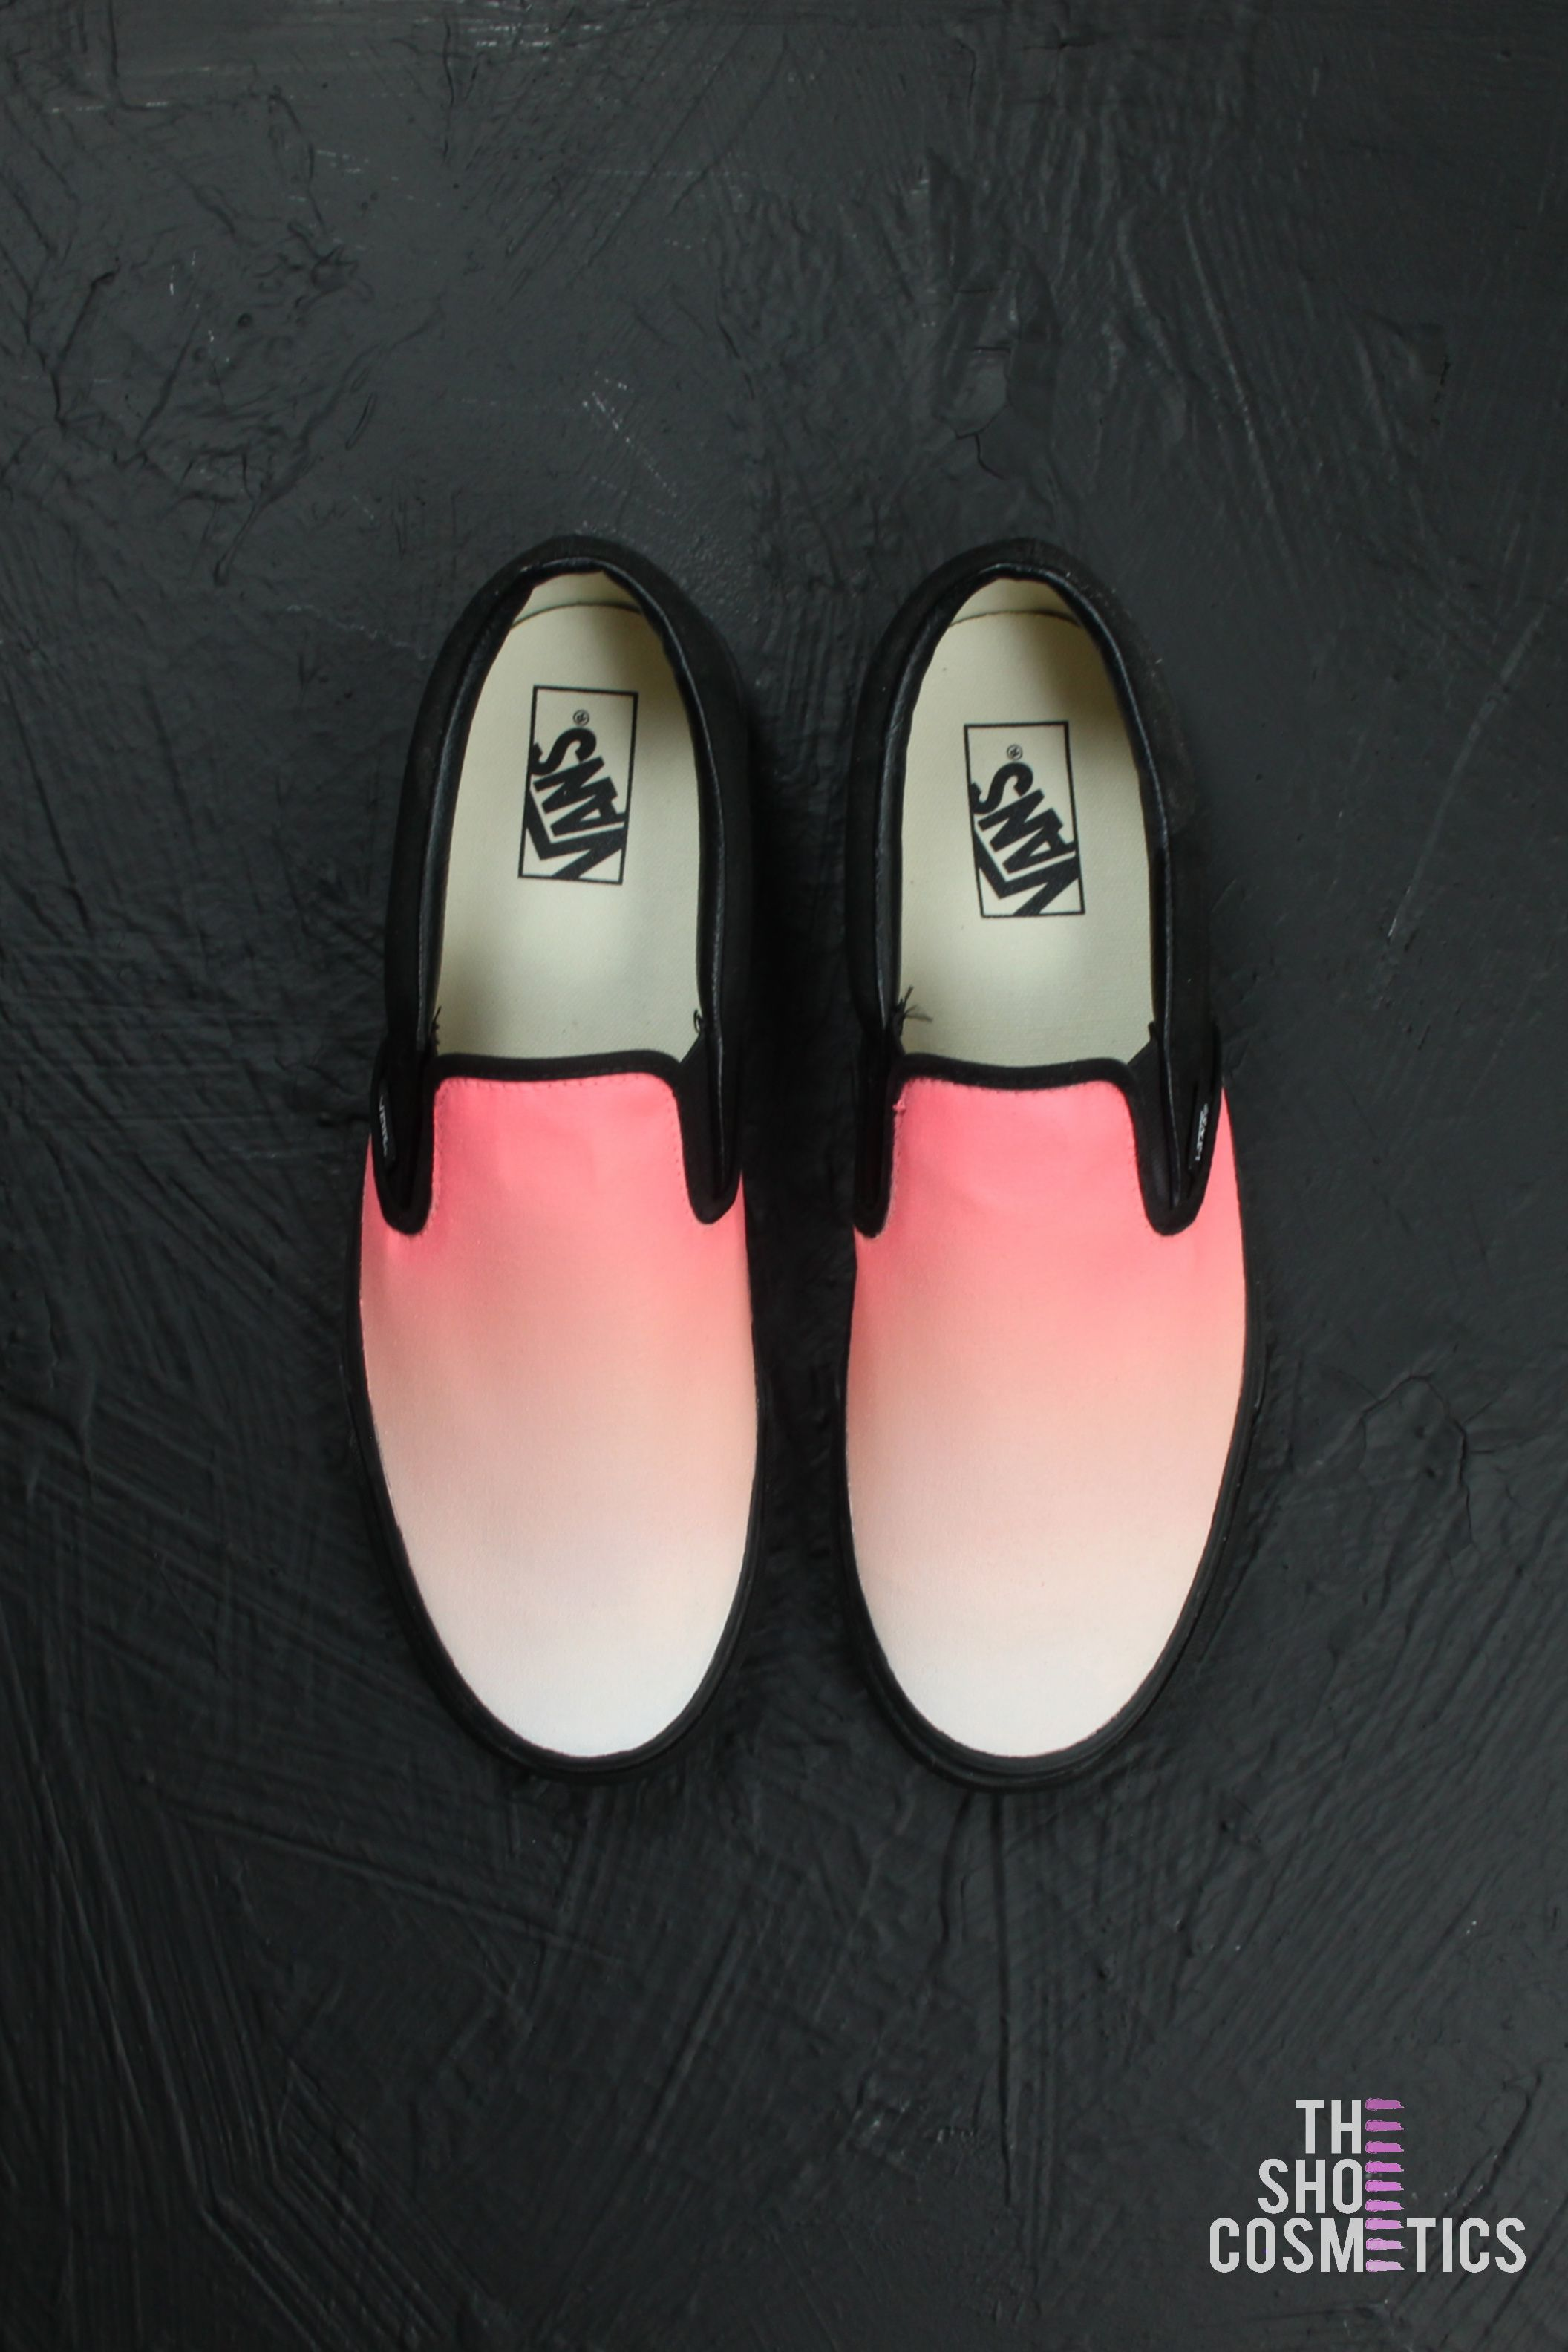 74ac4e463caee2 Introducing our pink and peach ombre custom vans slip on shoes. Maybe  looking for a new pair of black vans or pink vans shoes  Explore these Vans  slip on ...